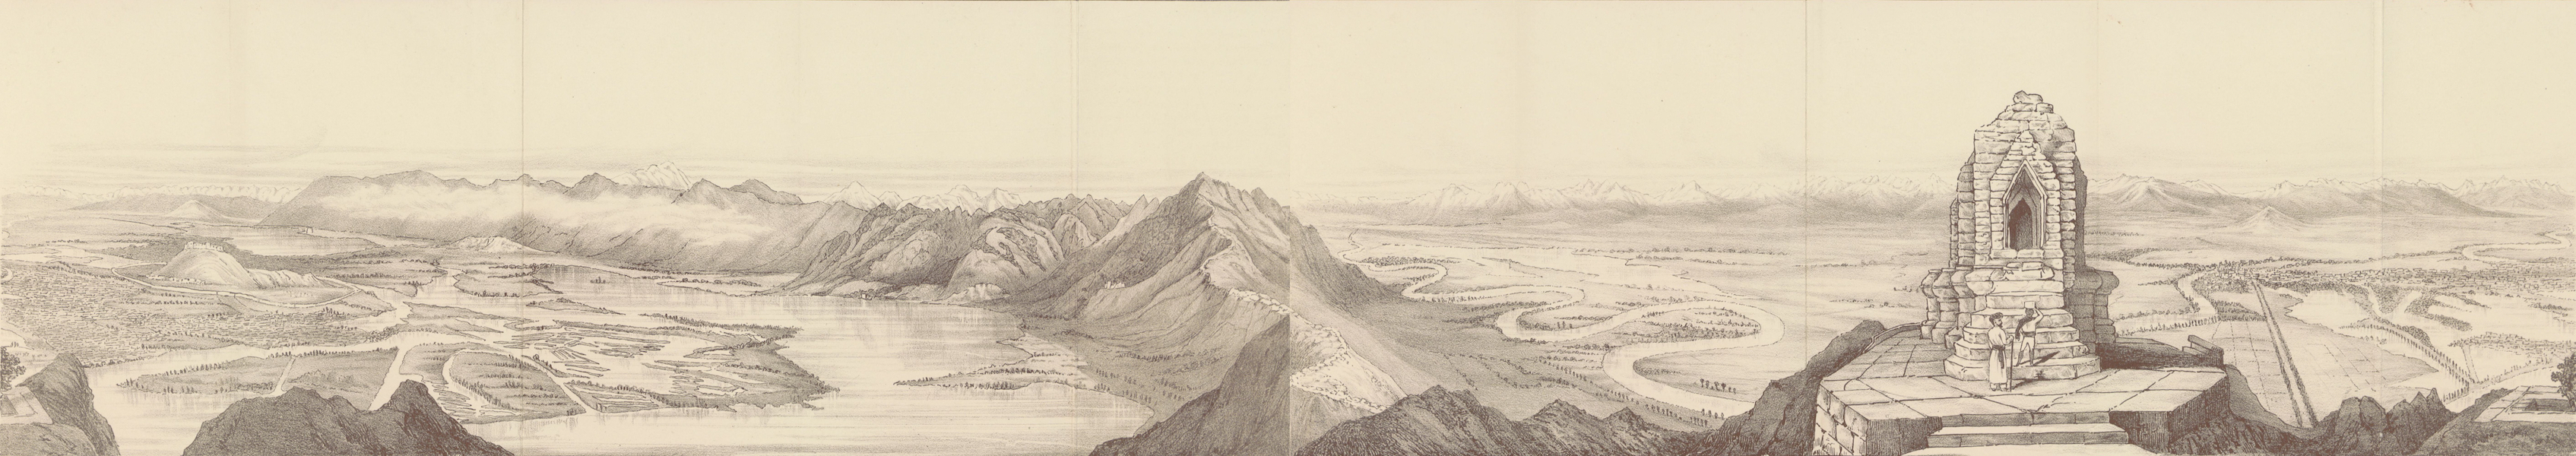 Journals Kept in Hyderabad, Kashmir, Sikkim, and Nepal Vol. 2 - Sketch of the Panorama from the Takht-i-Sulaiman (1887)